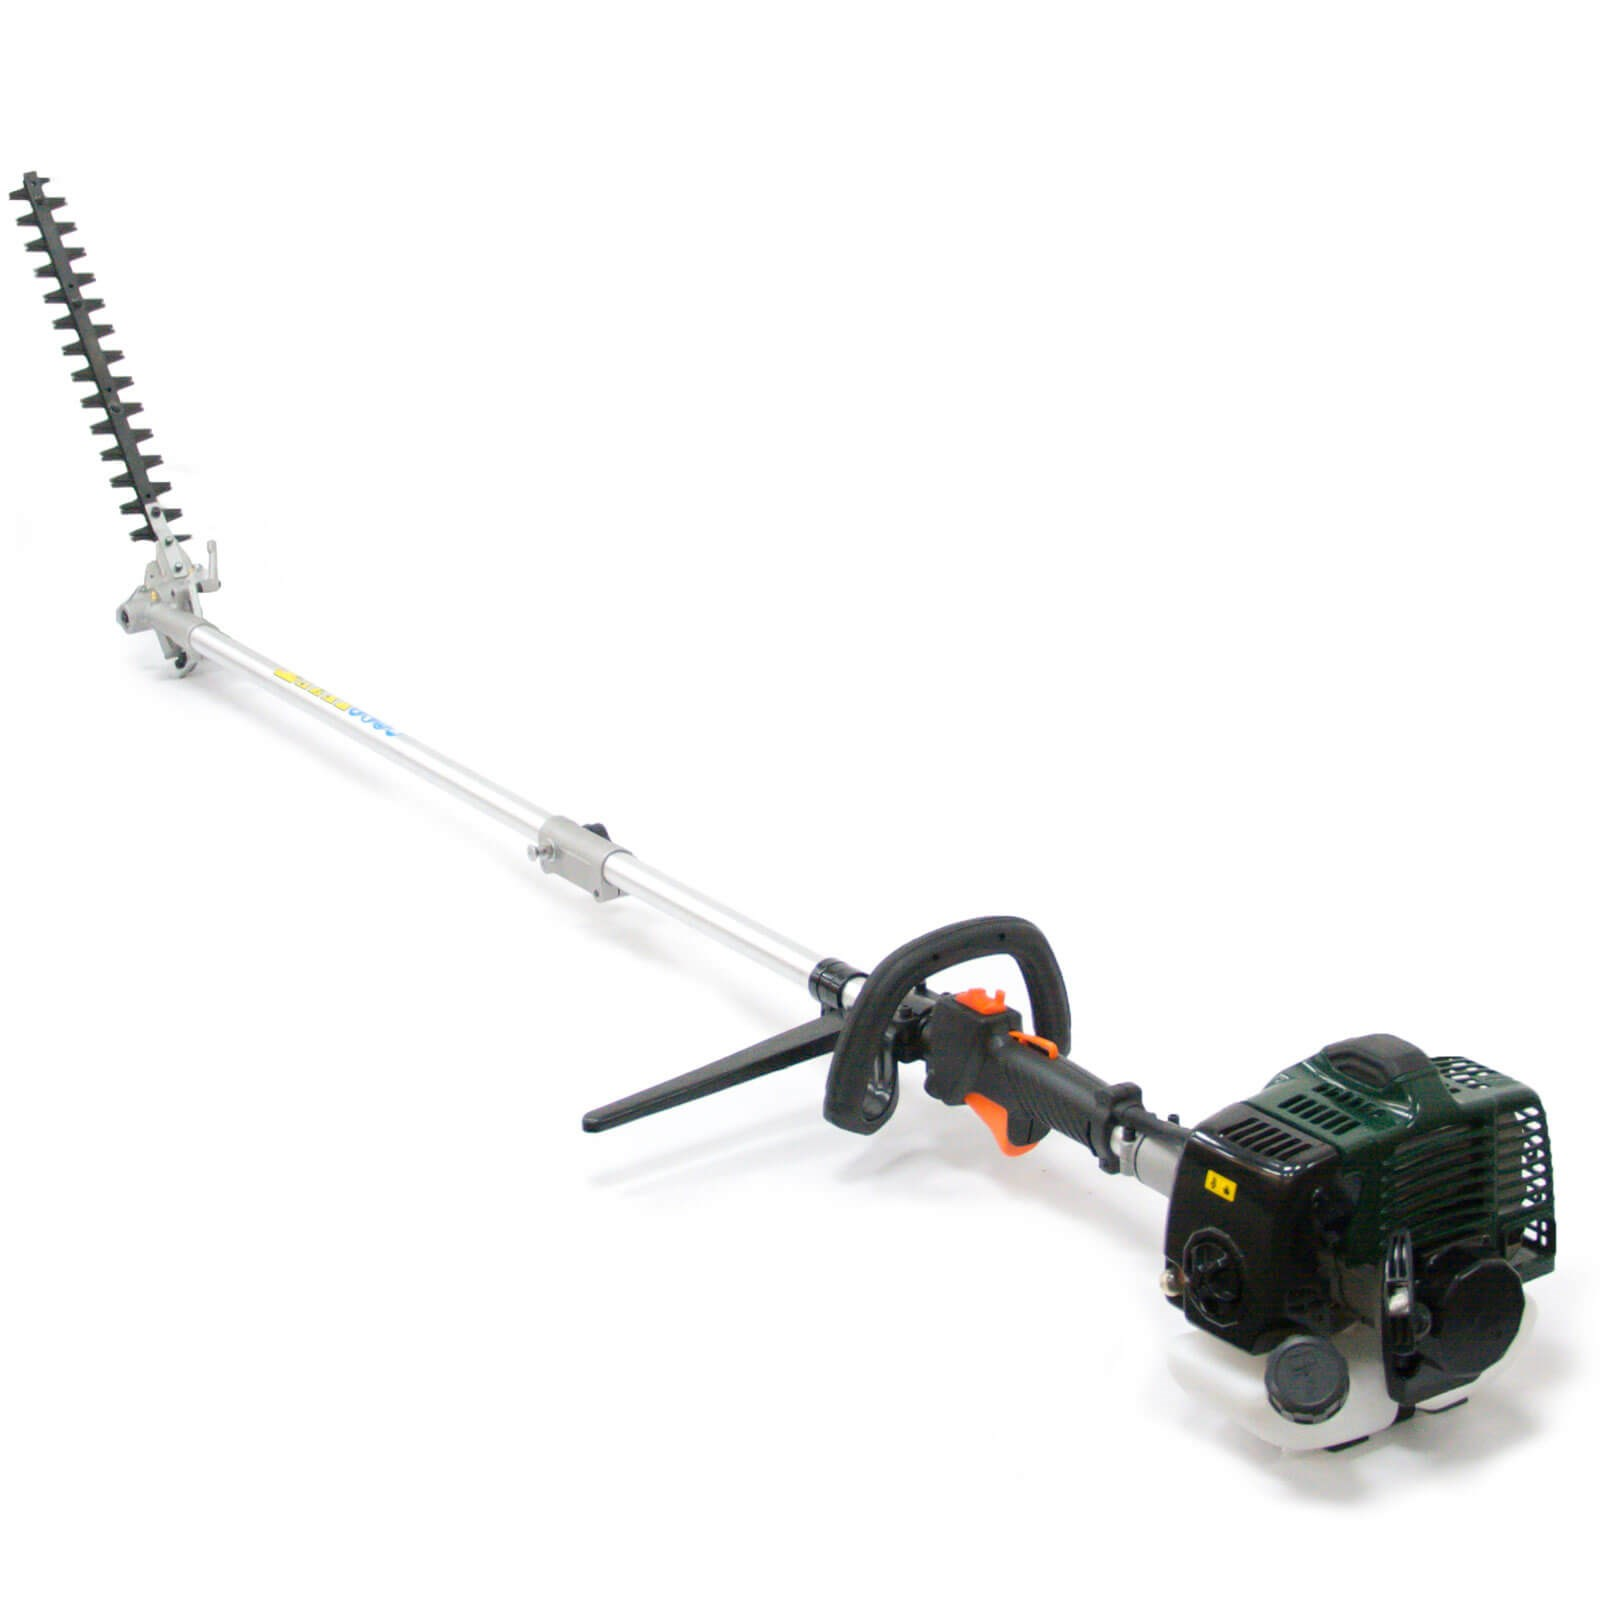 Webb Wemc26 4 In 1 Petrol Multi Cutter With Attachments Fuel Filters